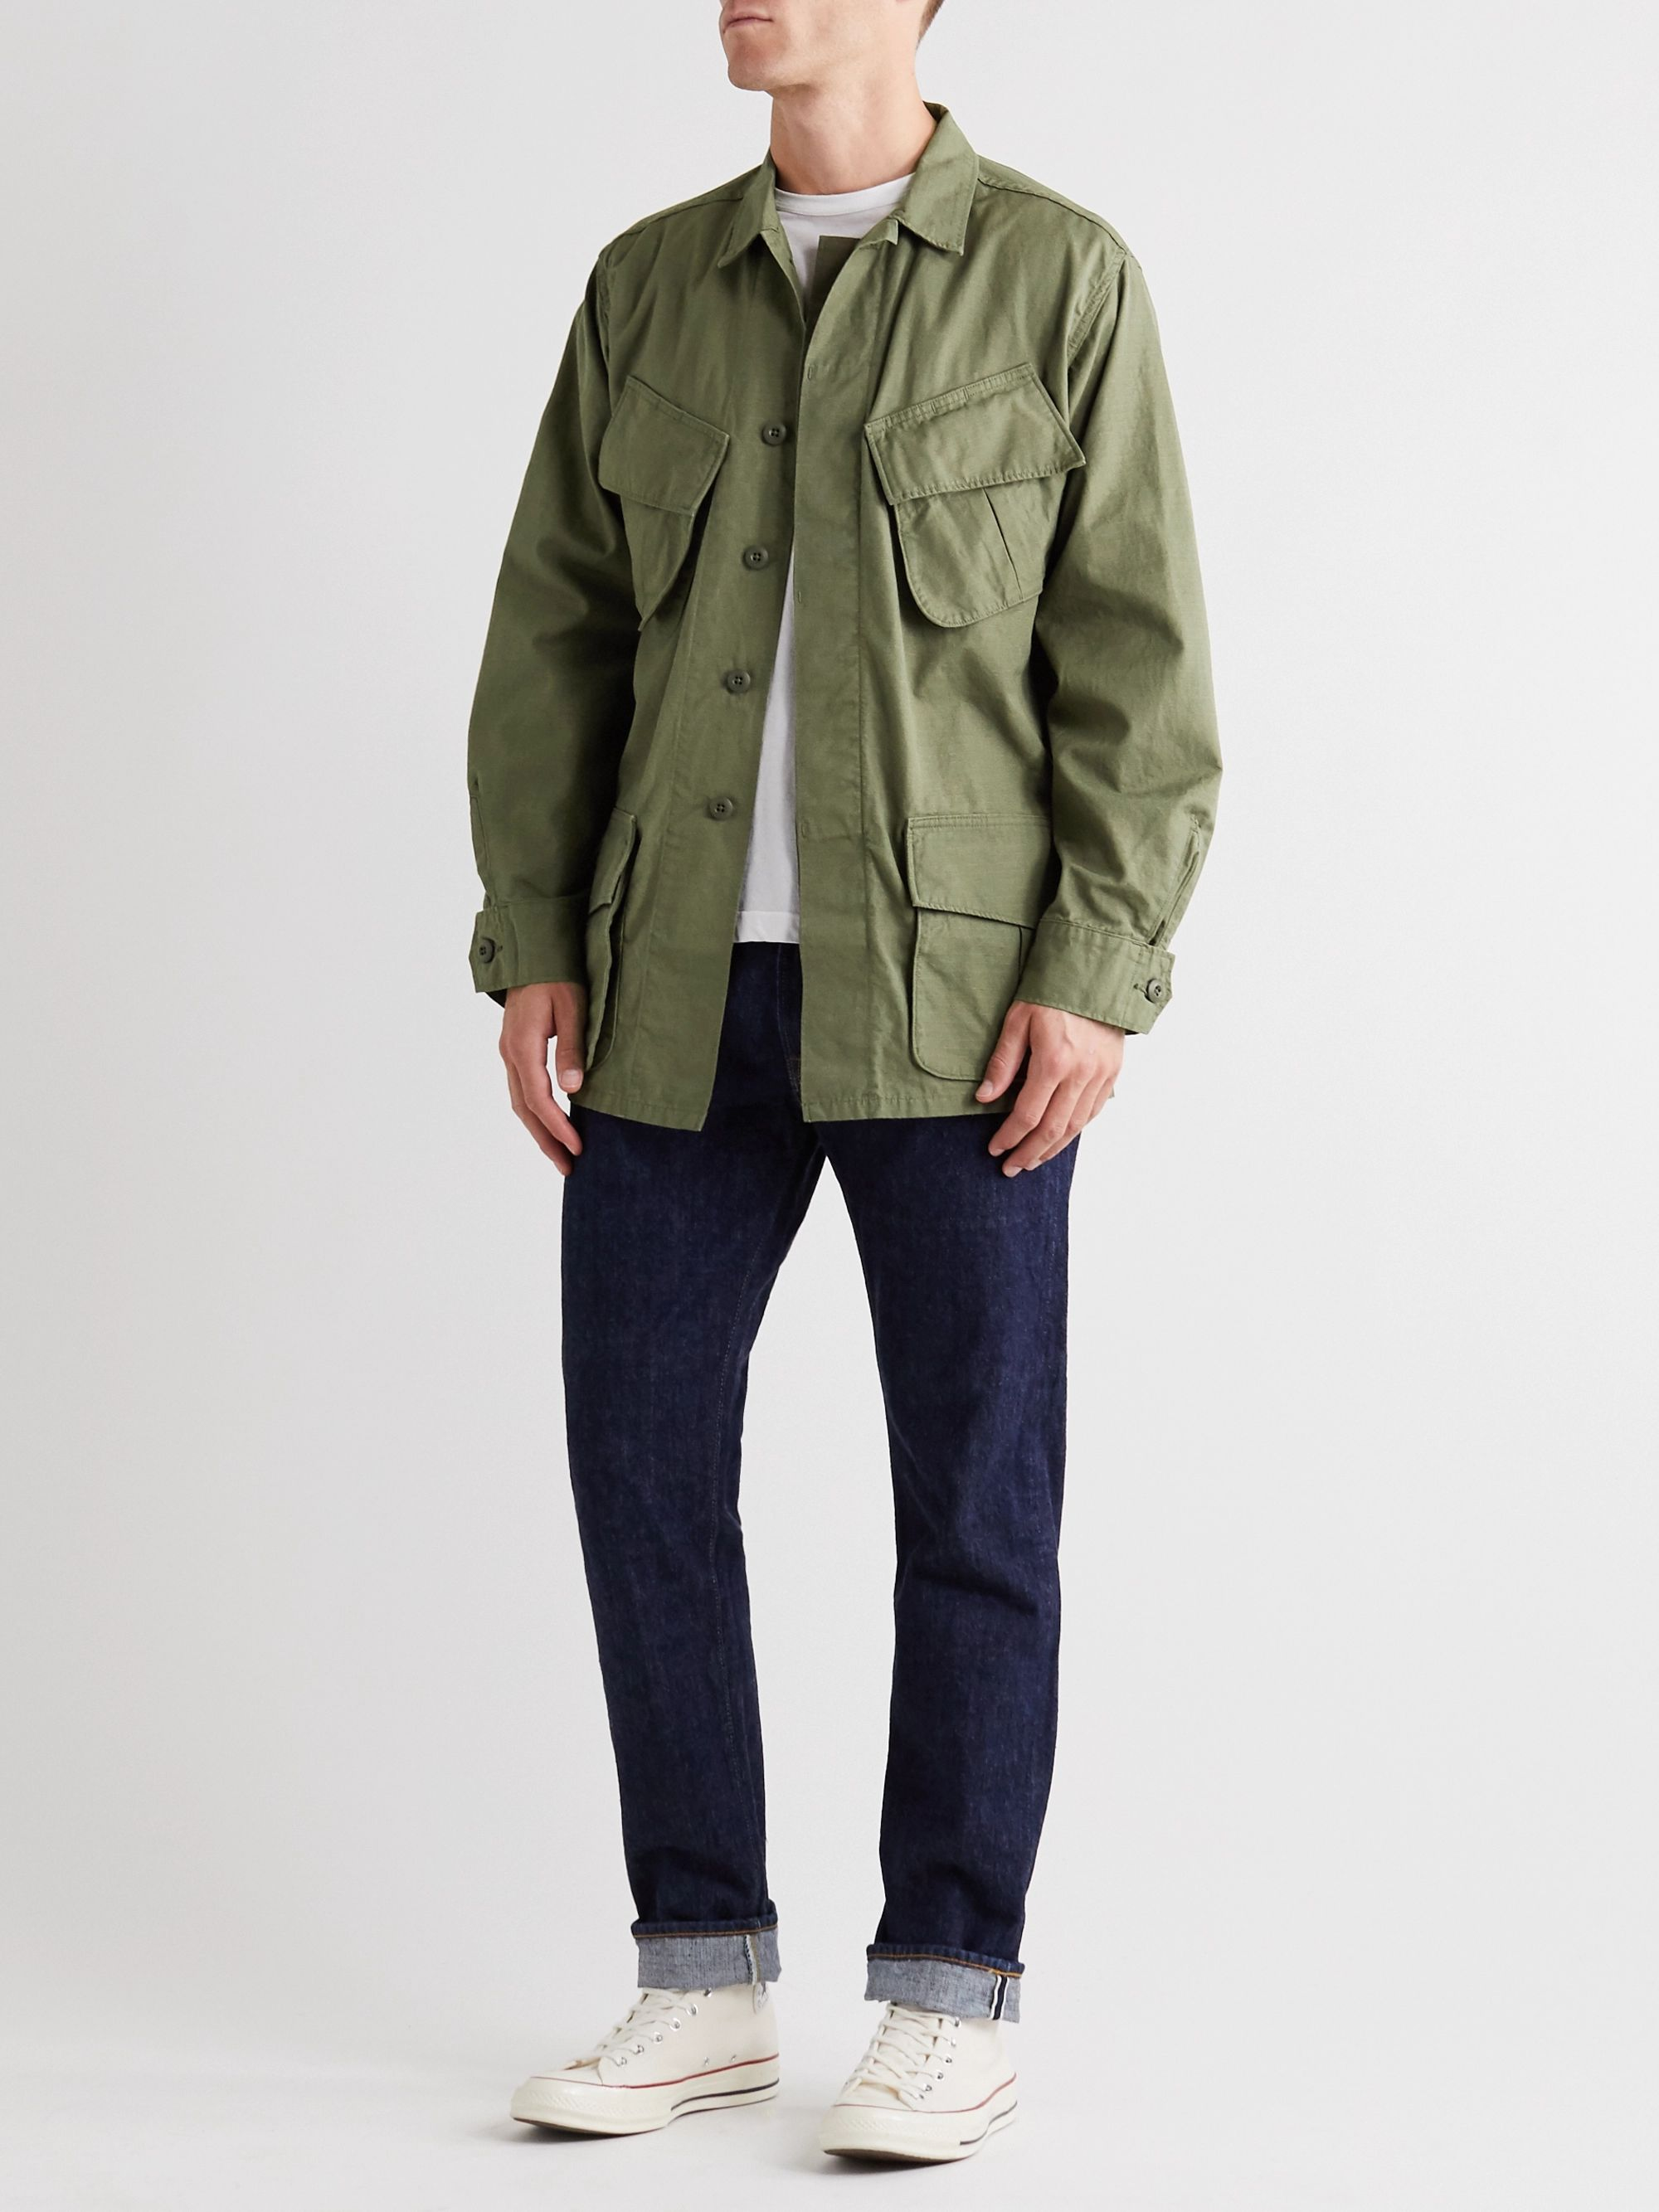 Army Green Cotton-ripstop Field Jacket   Orslow